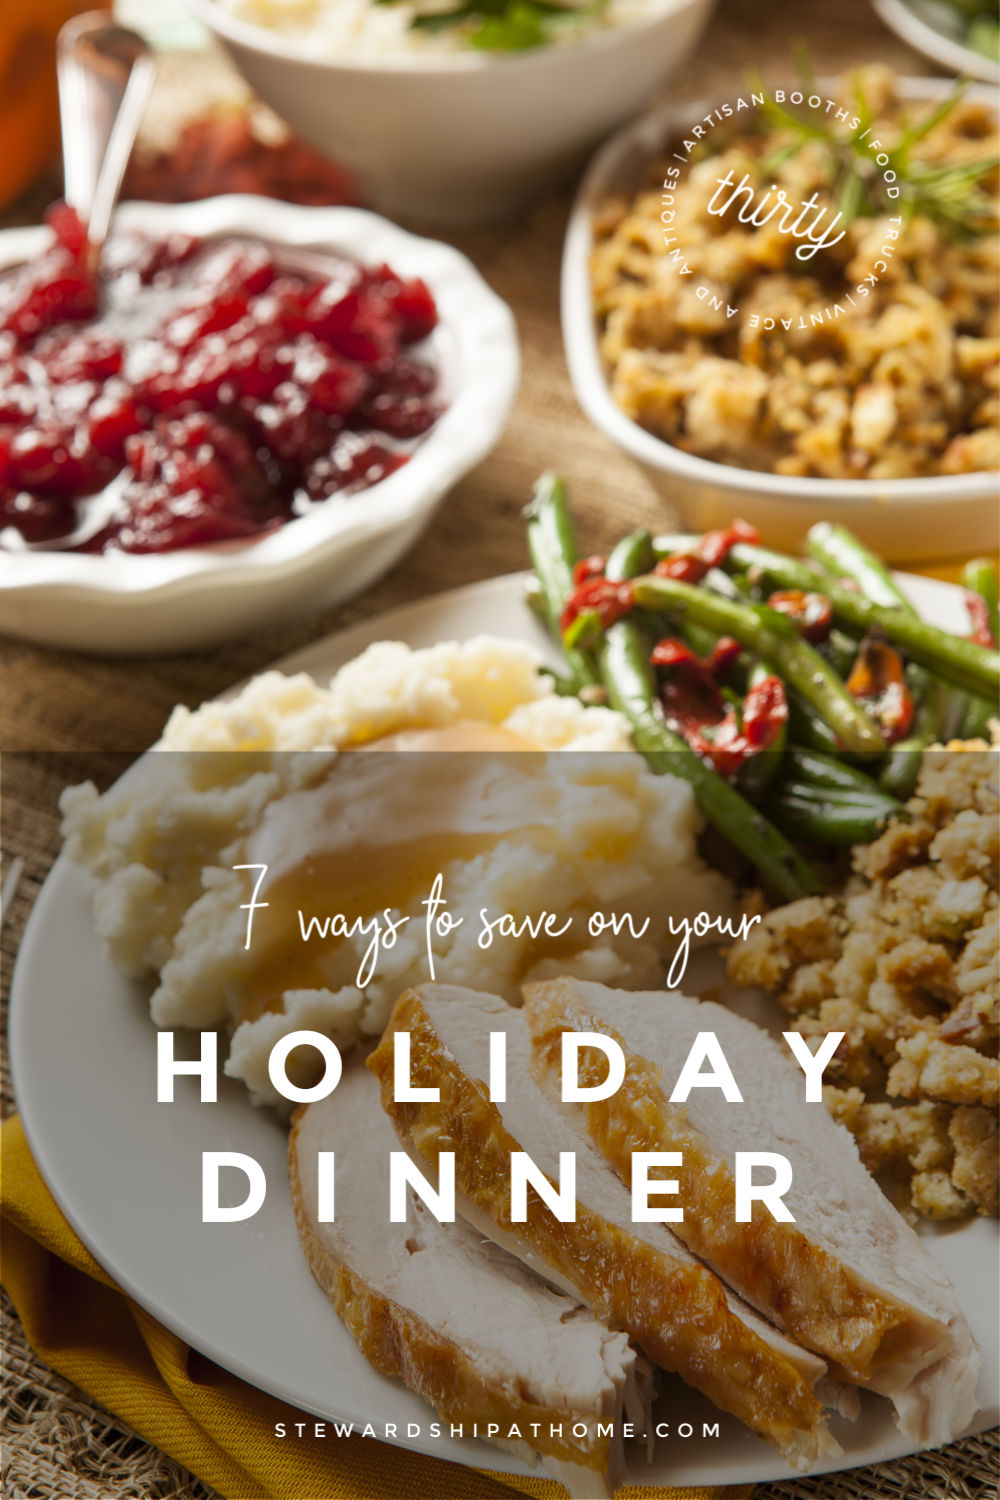 7 Ways to Save on Your Holiday Dinner